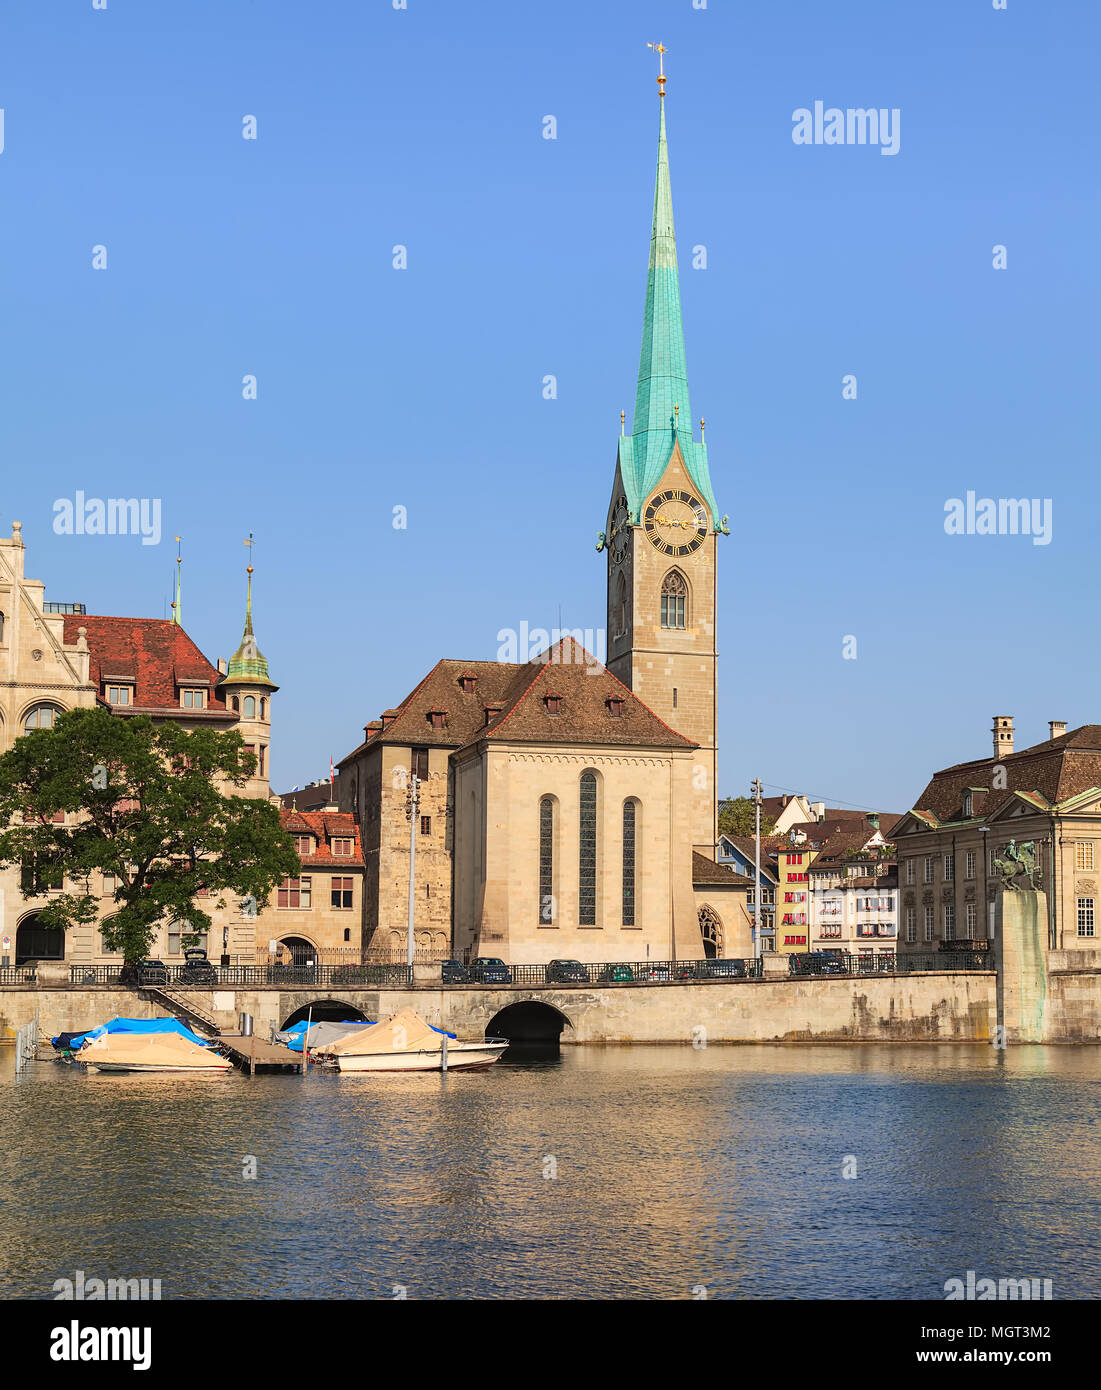 The Fraumunster cathedral in Zurich, Switzerland - a well-known landmark of the city. - Stock Image